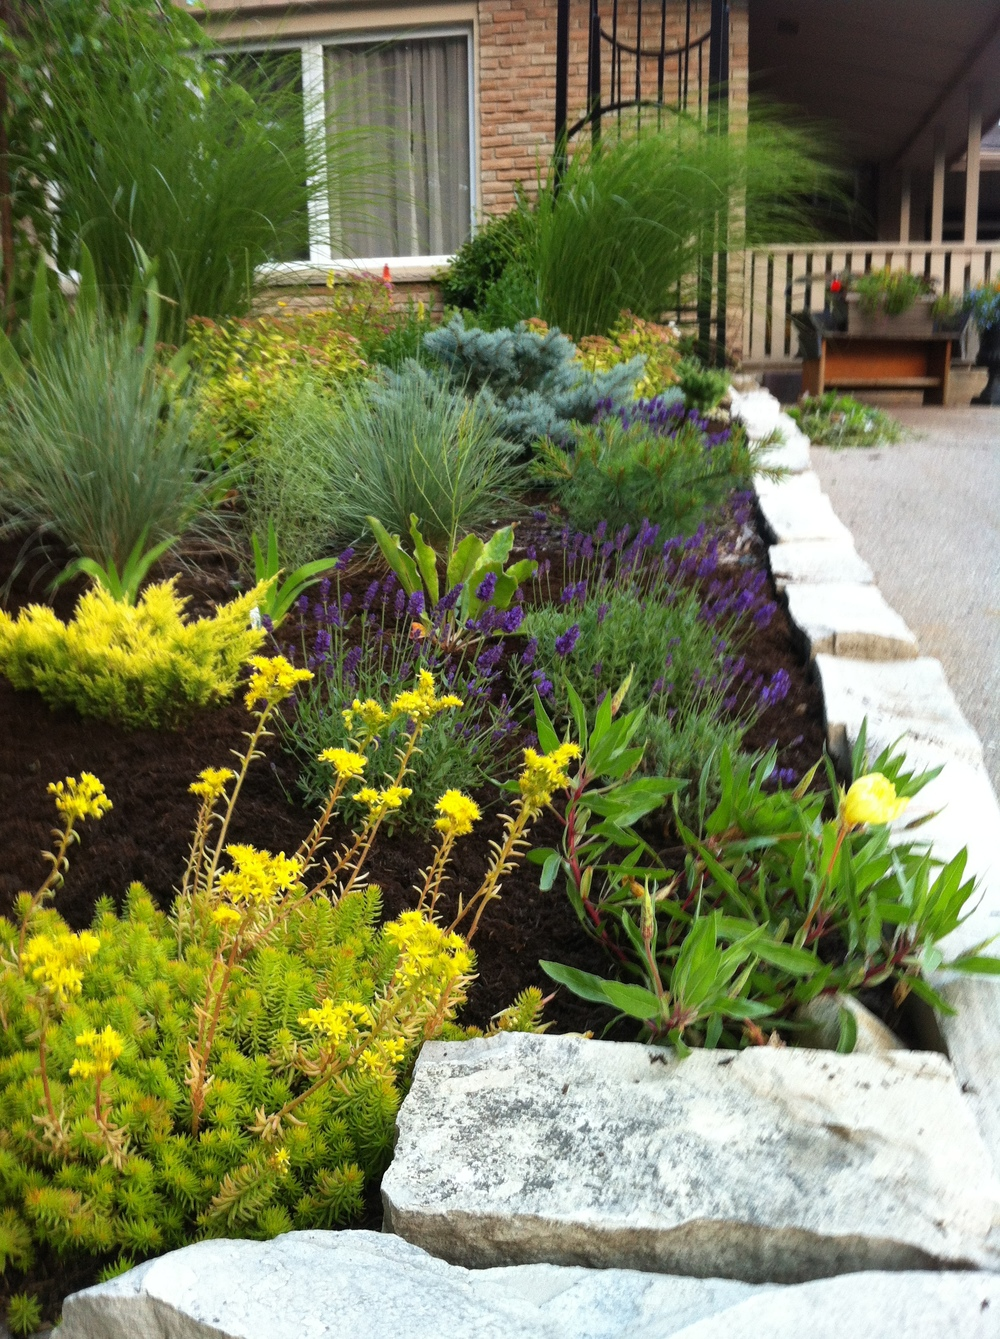 Growing on a dry sunny site with sandy/rocky soil can be a challenge, but there are some secrets for success that will result in a beautiful garden like this.